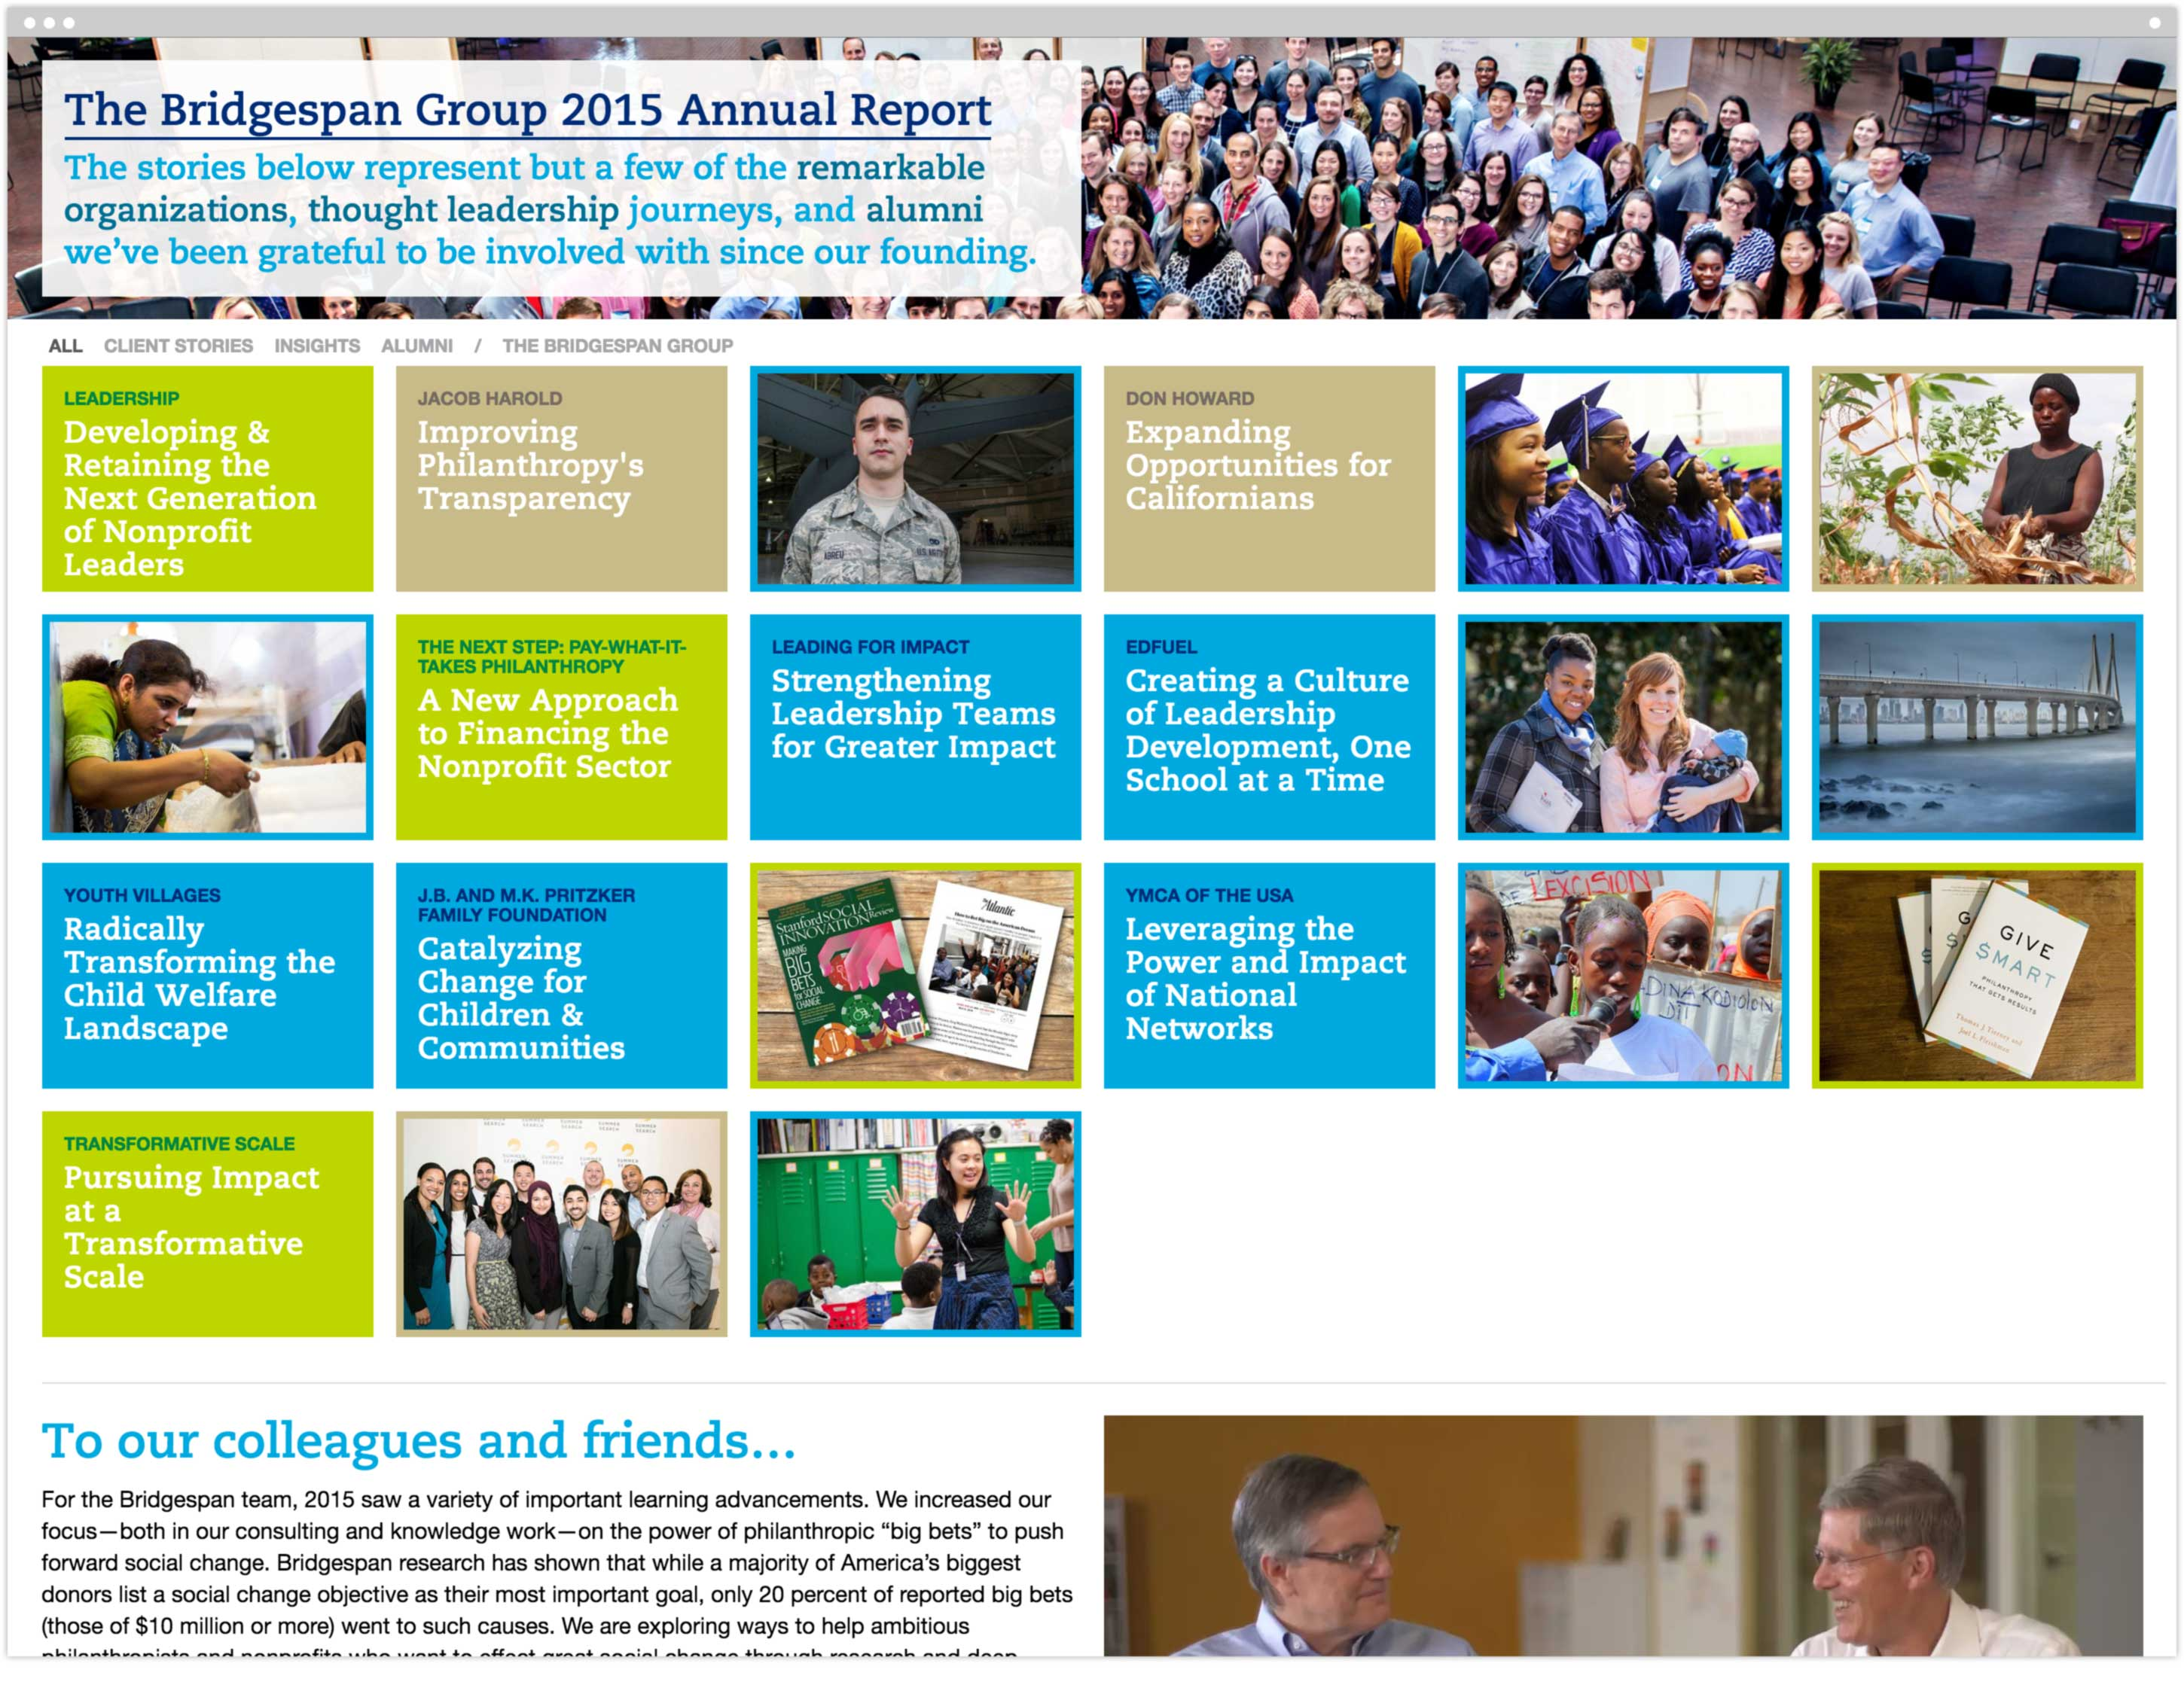 2016 Annual Report microsite homepage